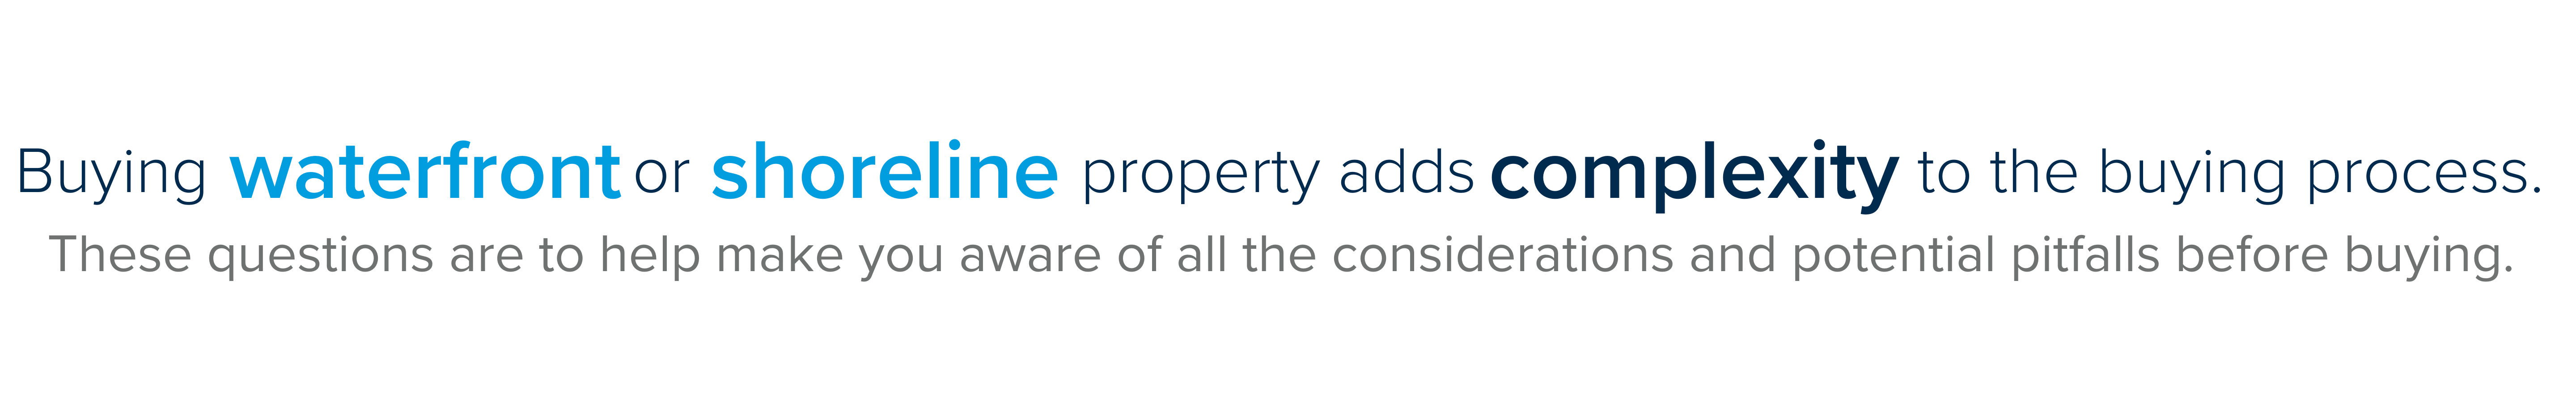 Waterfront Resources, Windermere Real Estate, Whidbey Island